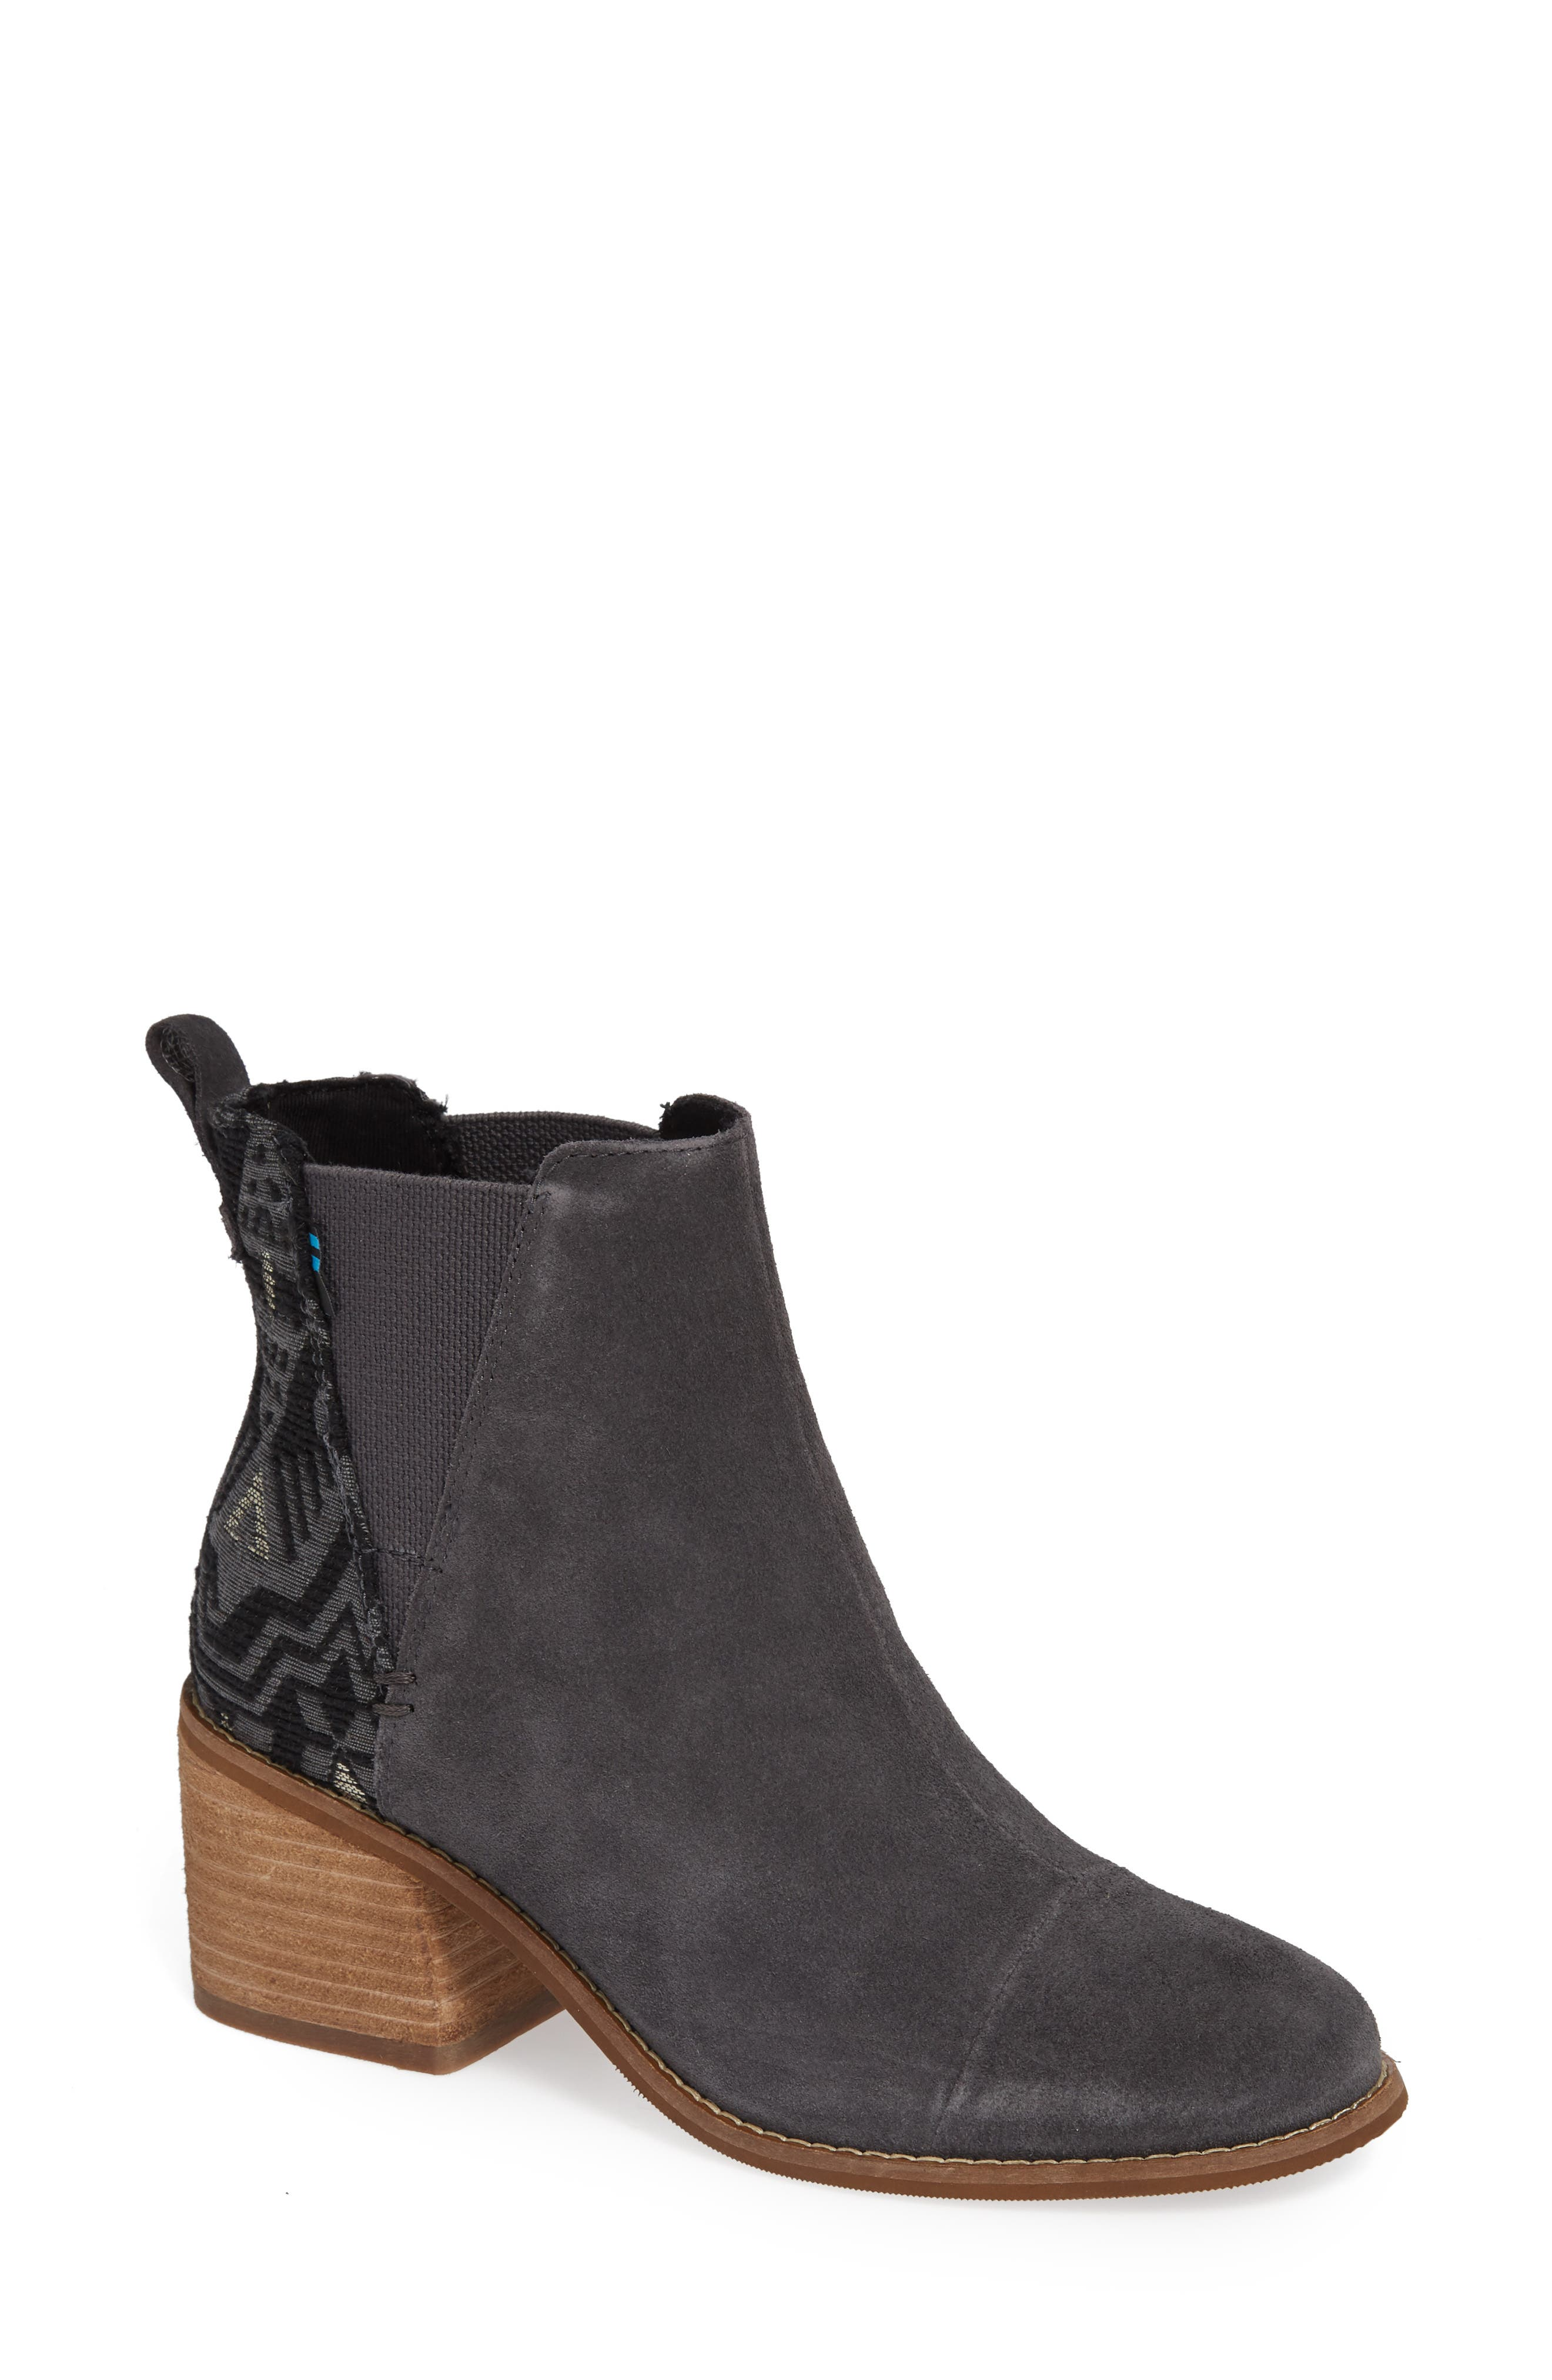 Esme Bootie,                         Main,                         color, FORGED IRON SUEDE